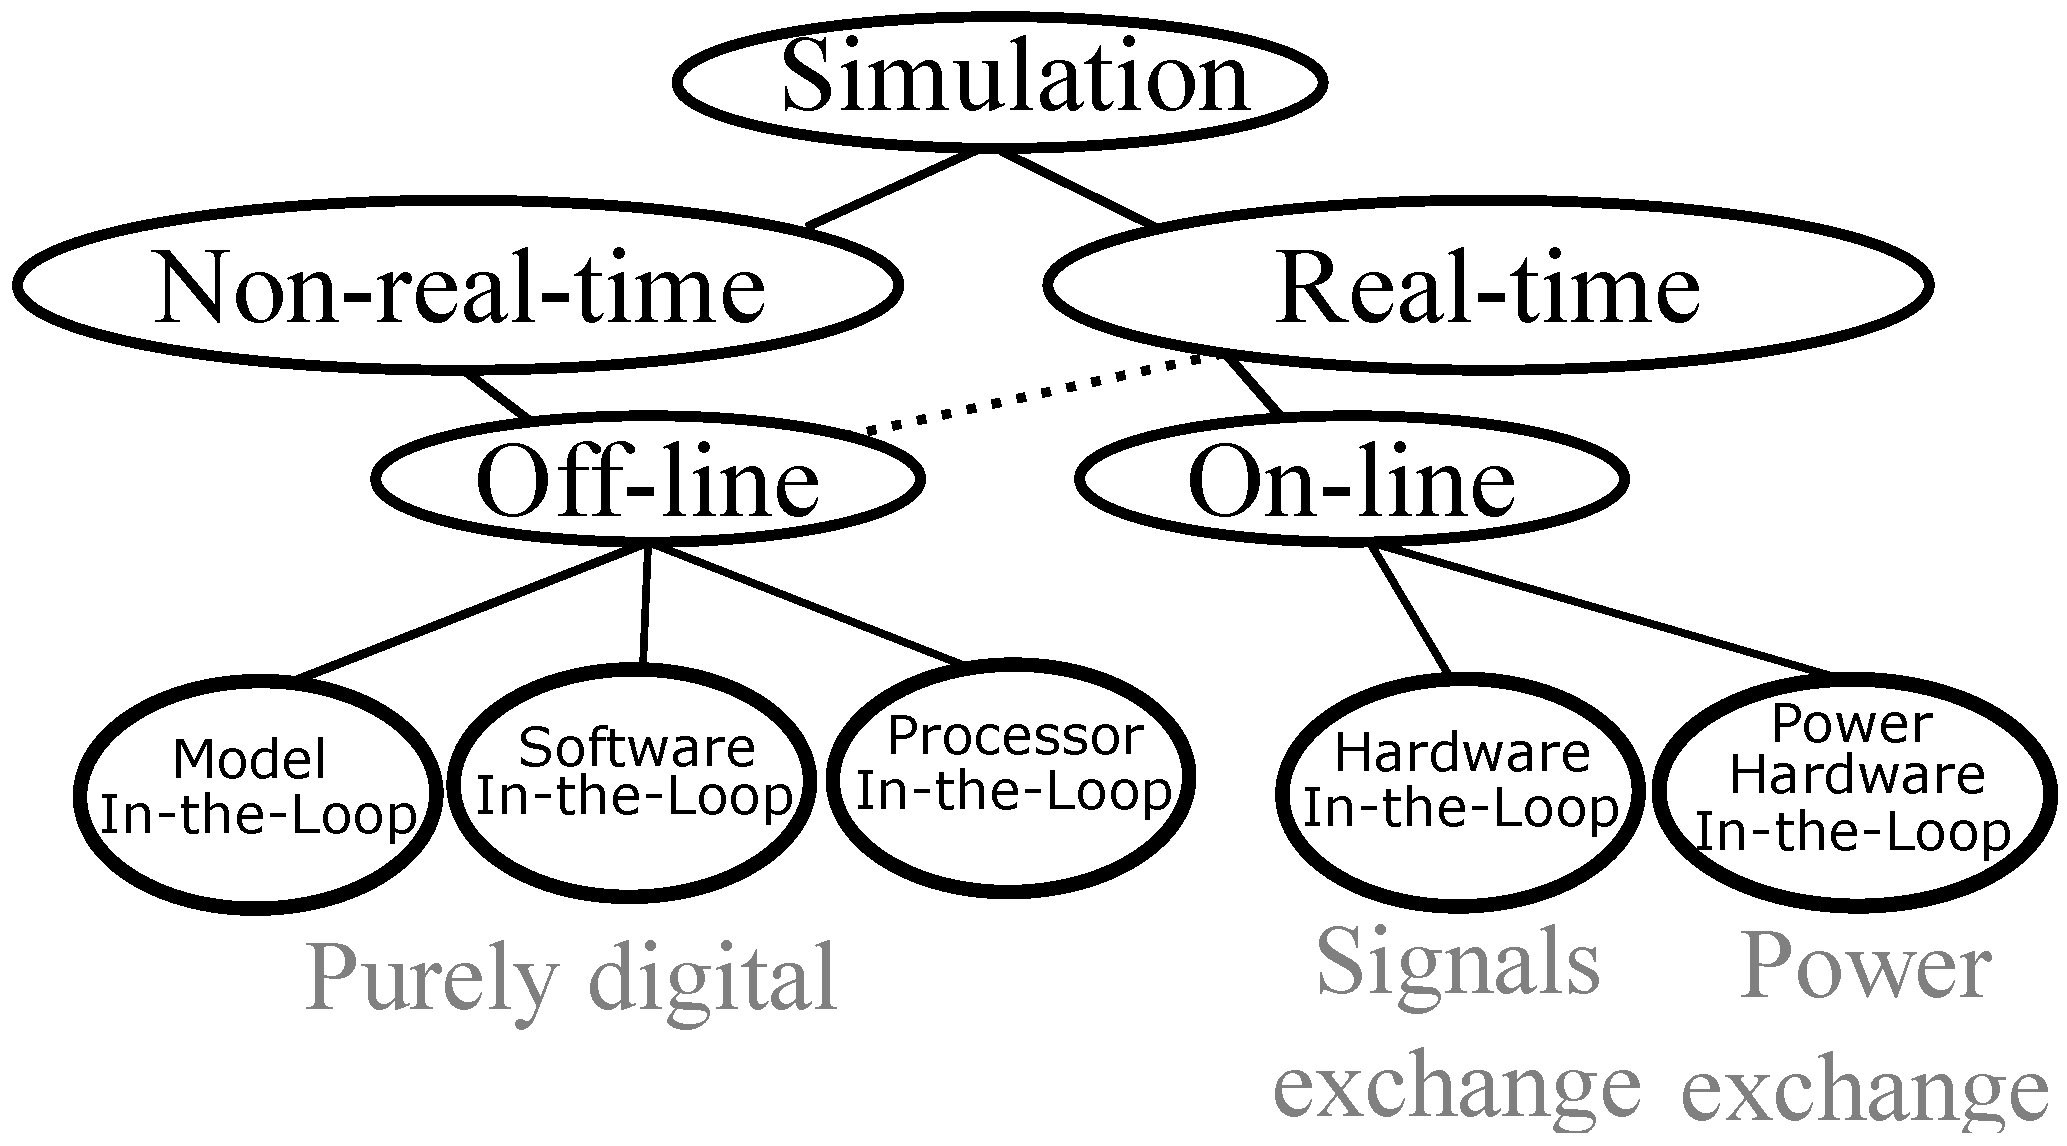 Energies Free Full Text Overview Of Real Time Simulation As A Thread Electronic Circuit Design And Software For Mac 10 00817 G002 Figure 2 Schematic Types Concepts